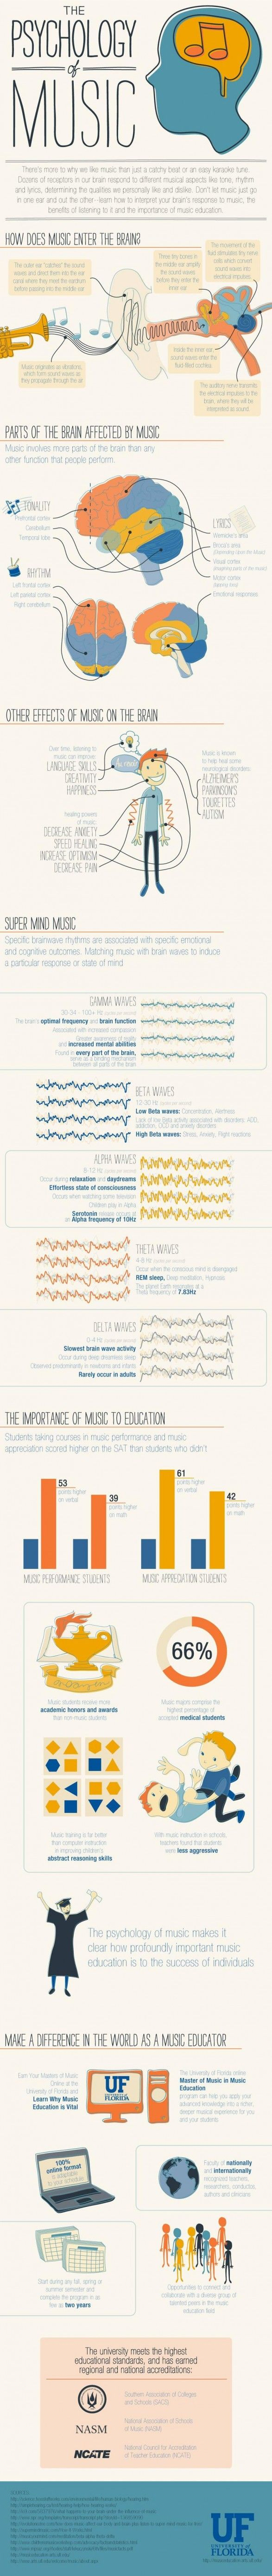 best music therapy images on pinterest therapy ideas art